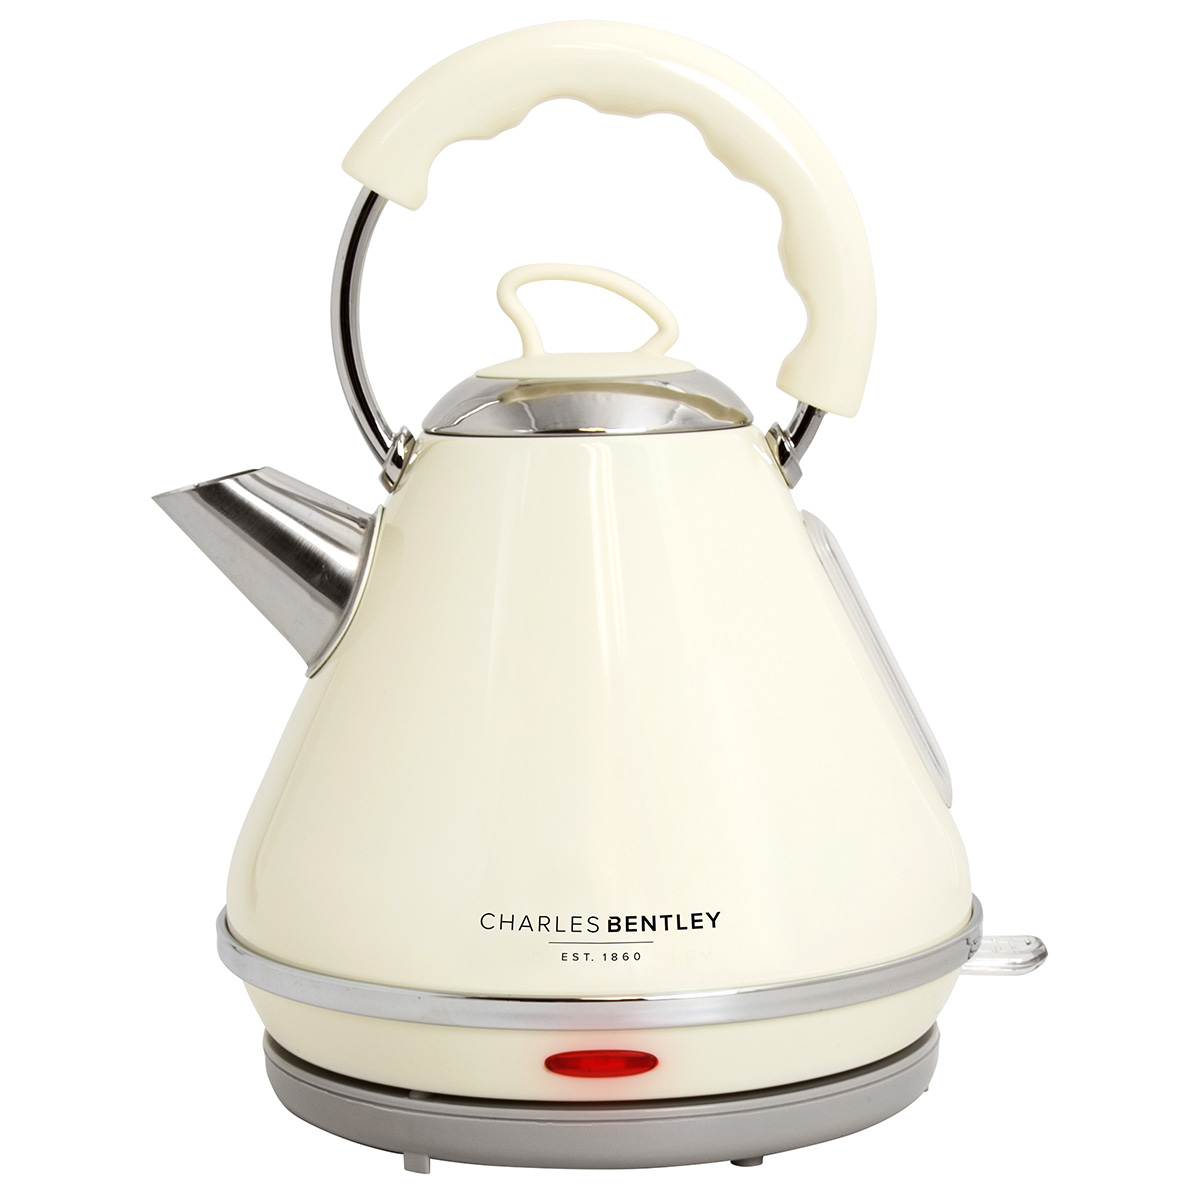 charles bentley cordless cream pyramid kettle 3000w 1 7 litre stainless steel ebay. Black Bedroom Furniture Sets. Home Design Ideas